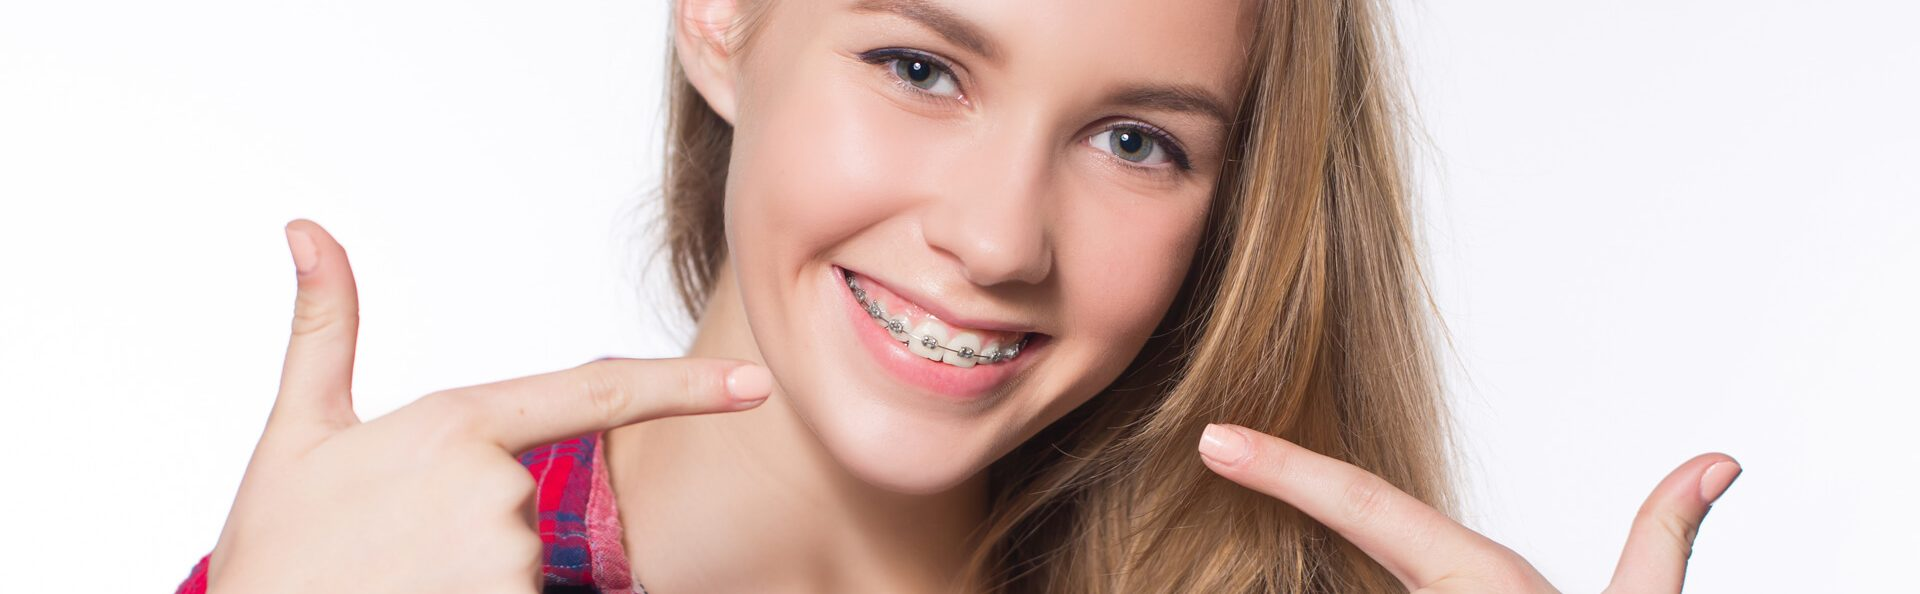 Orthodontic Emergencies Can Arise When Wearing Braces